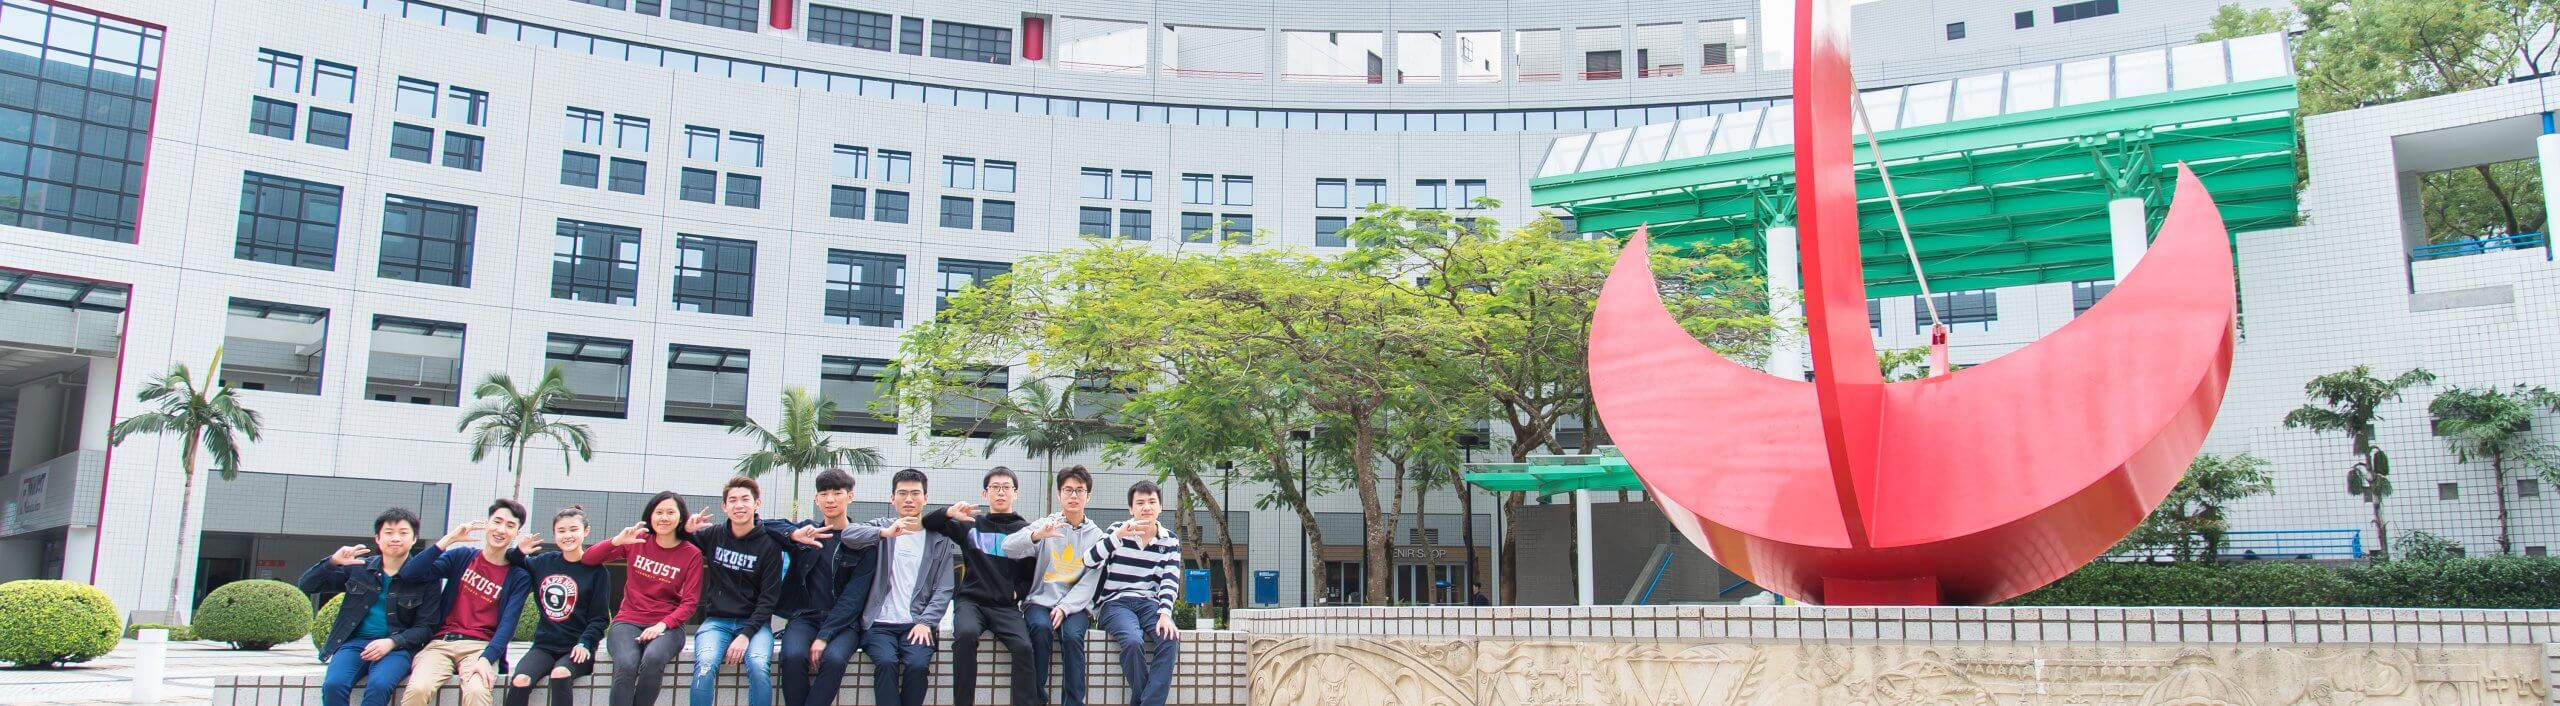 HKUST, Department of Electronic and Computer Engineering